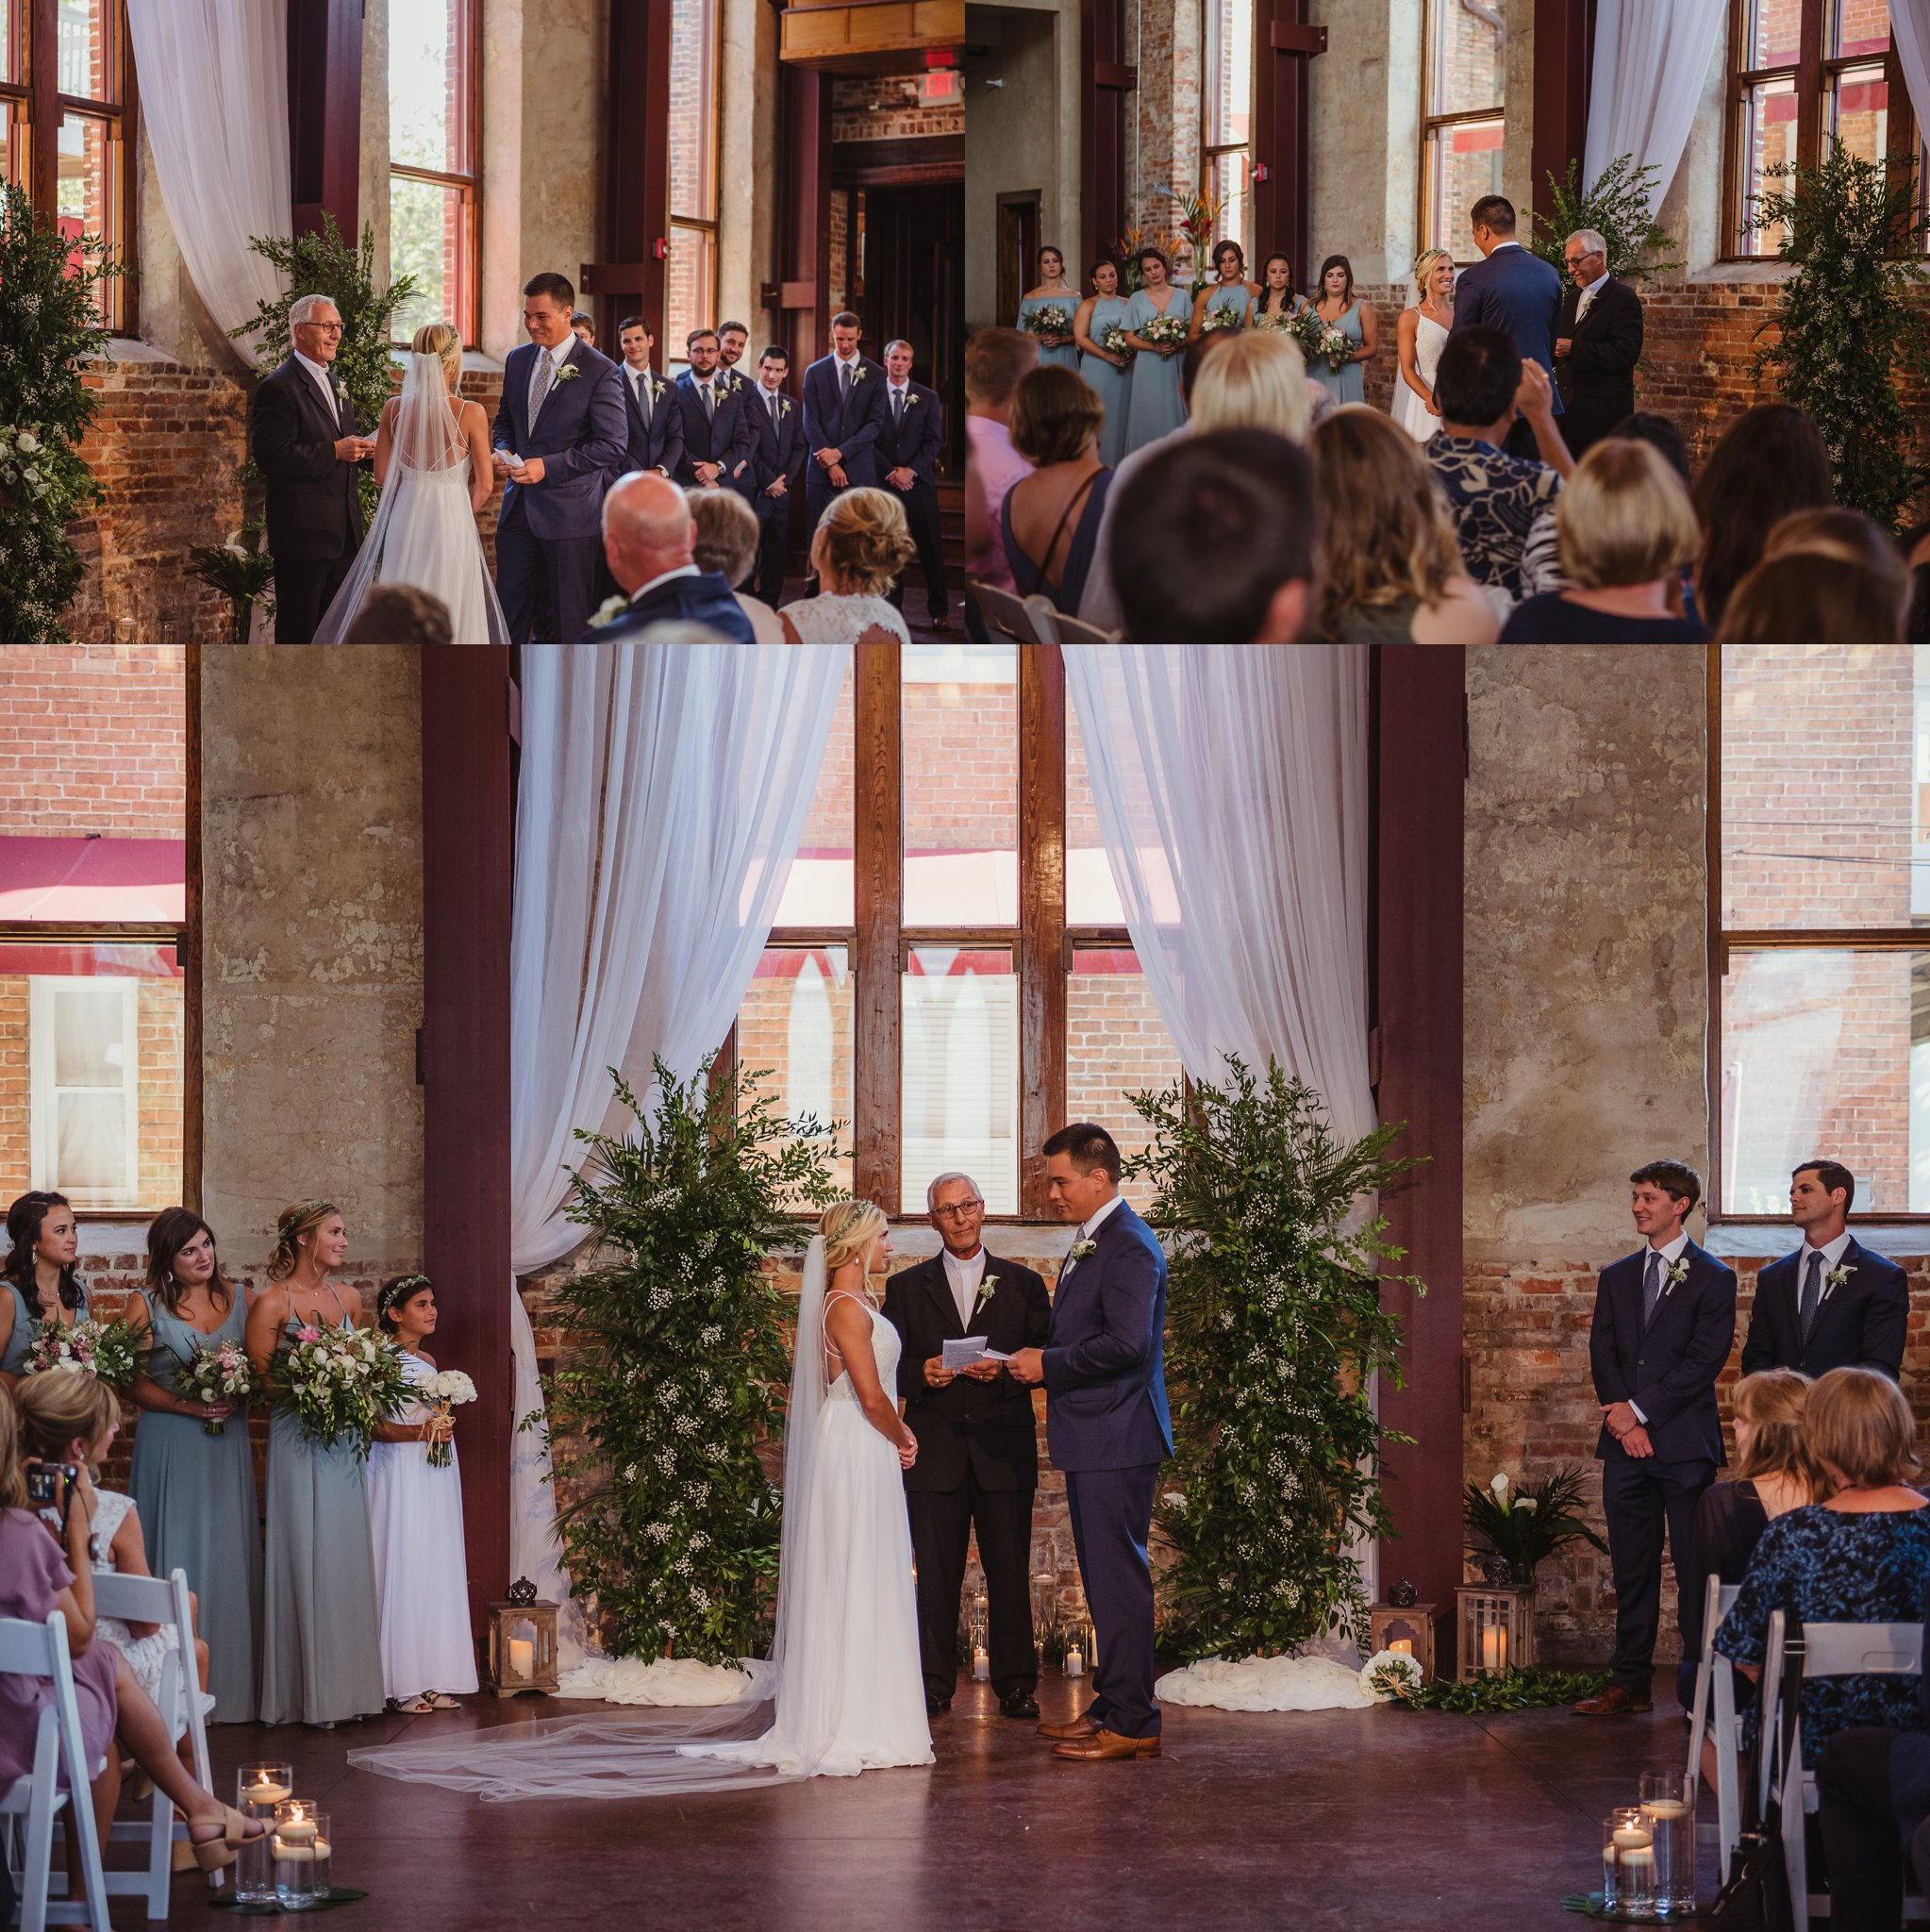 The bride and groom look at each other during their wedding ceremony at the Brooklyn Arts Center in Wilmington, NC, photos by Rose Trail Images.